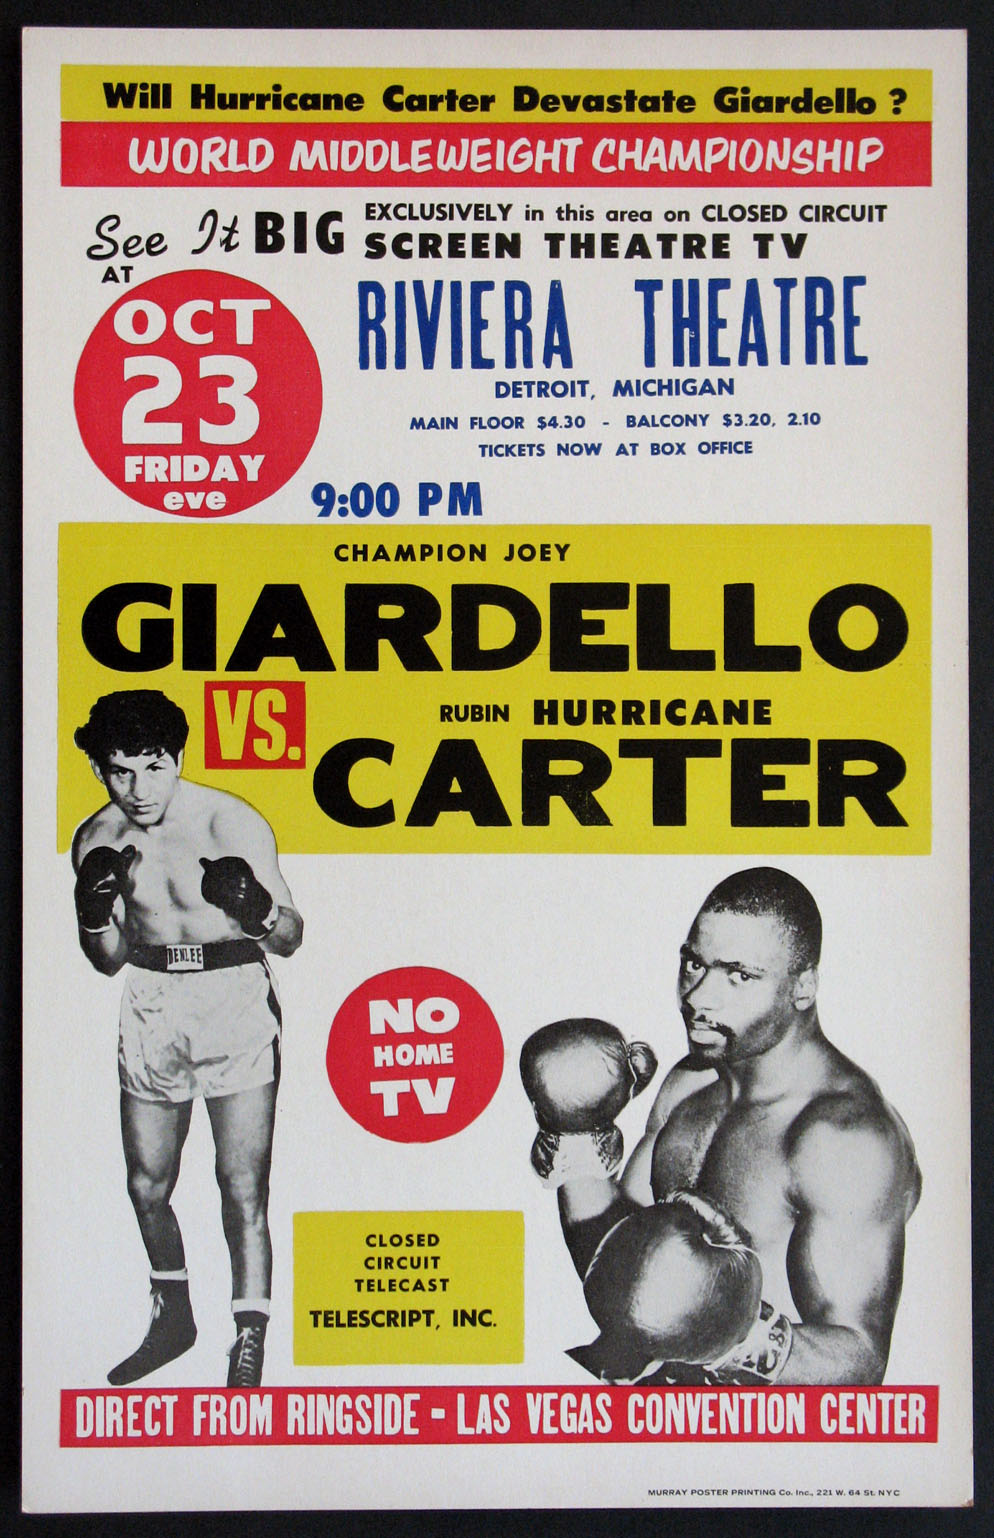 JOEY GIARDELLO VS. RUBIN HURRICANE CARTER VINTAGE MIDDLEWEIGHT BOXING FIGHT POSTER @ FilmPosters.com